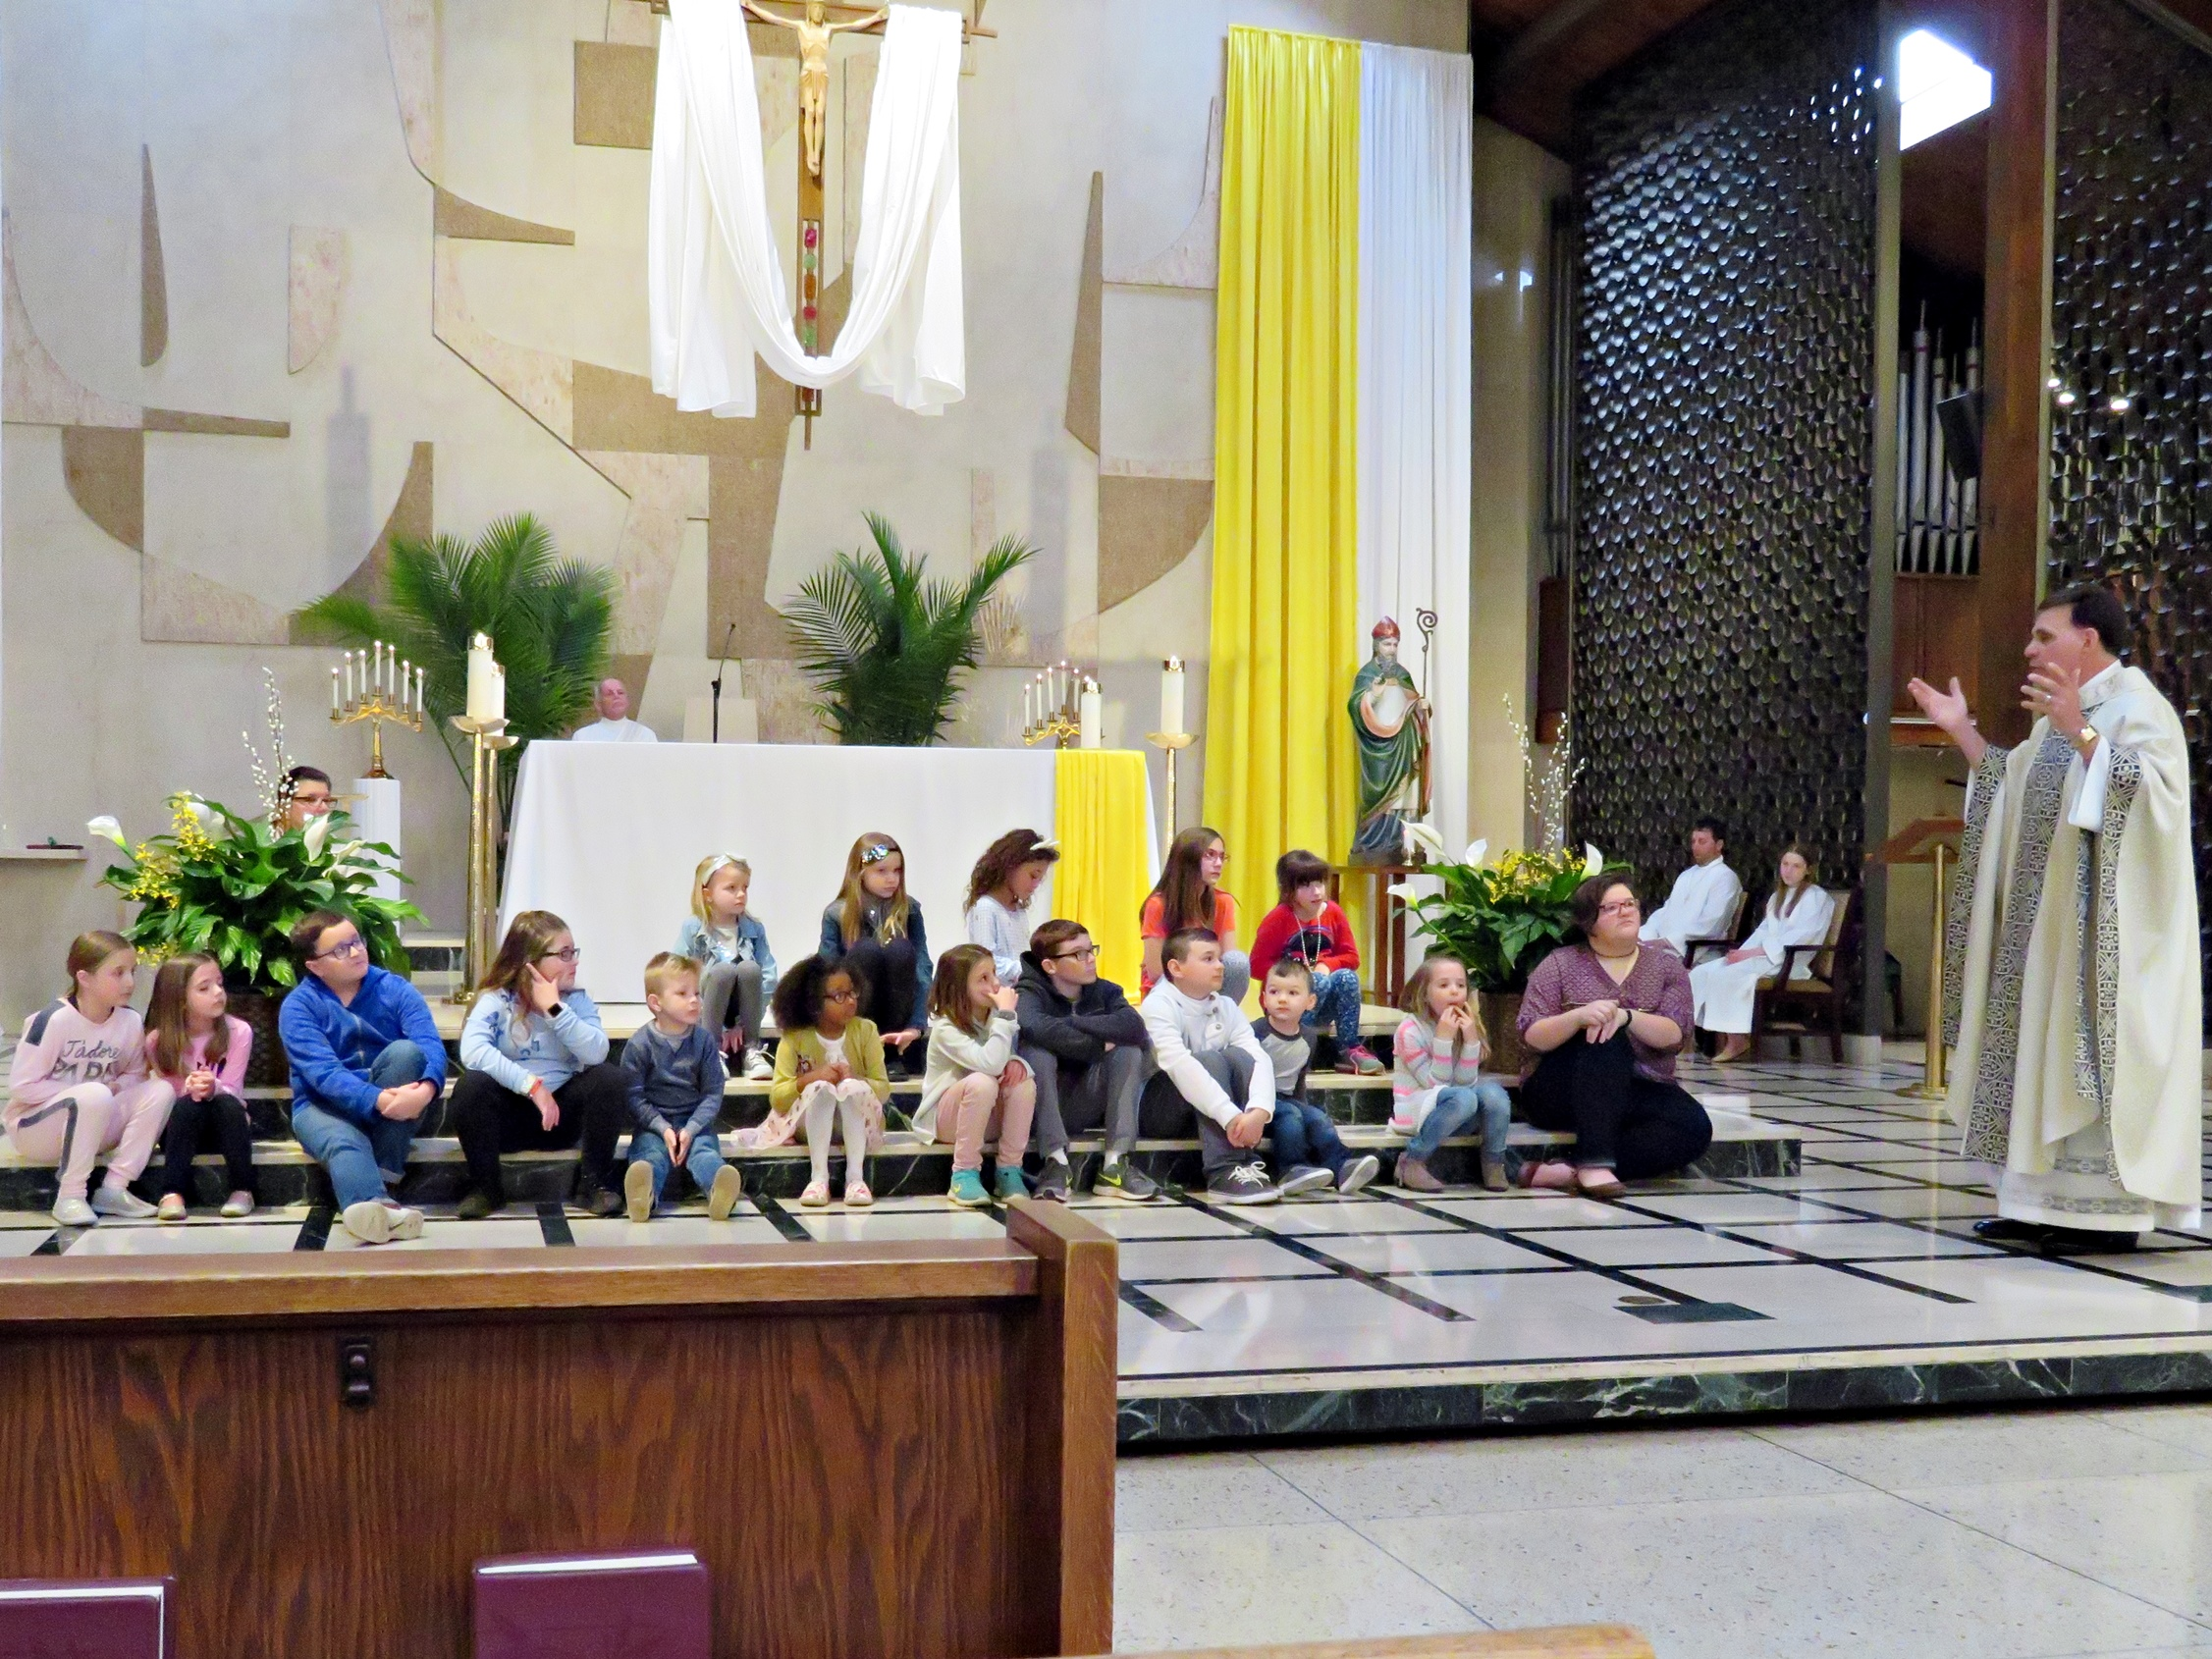 Children's Liturgy of the Word in Church